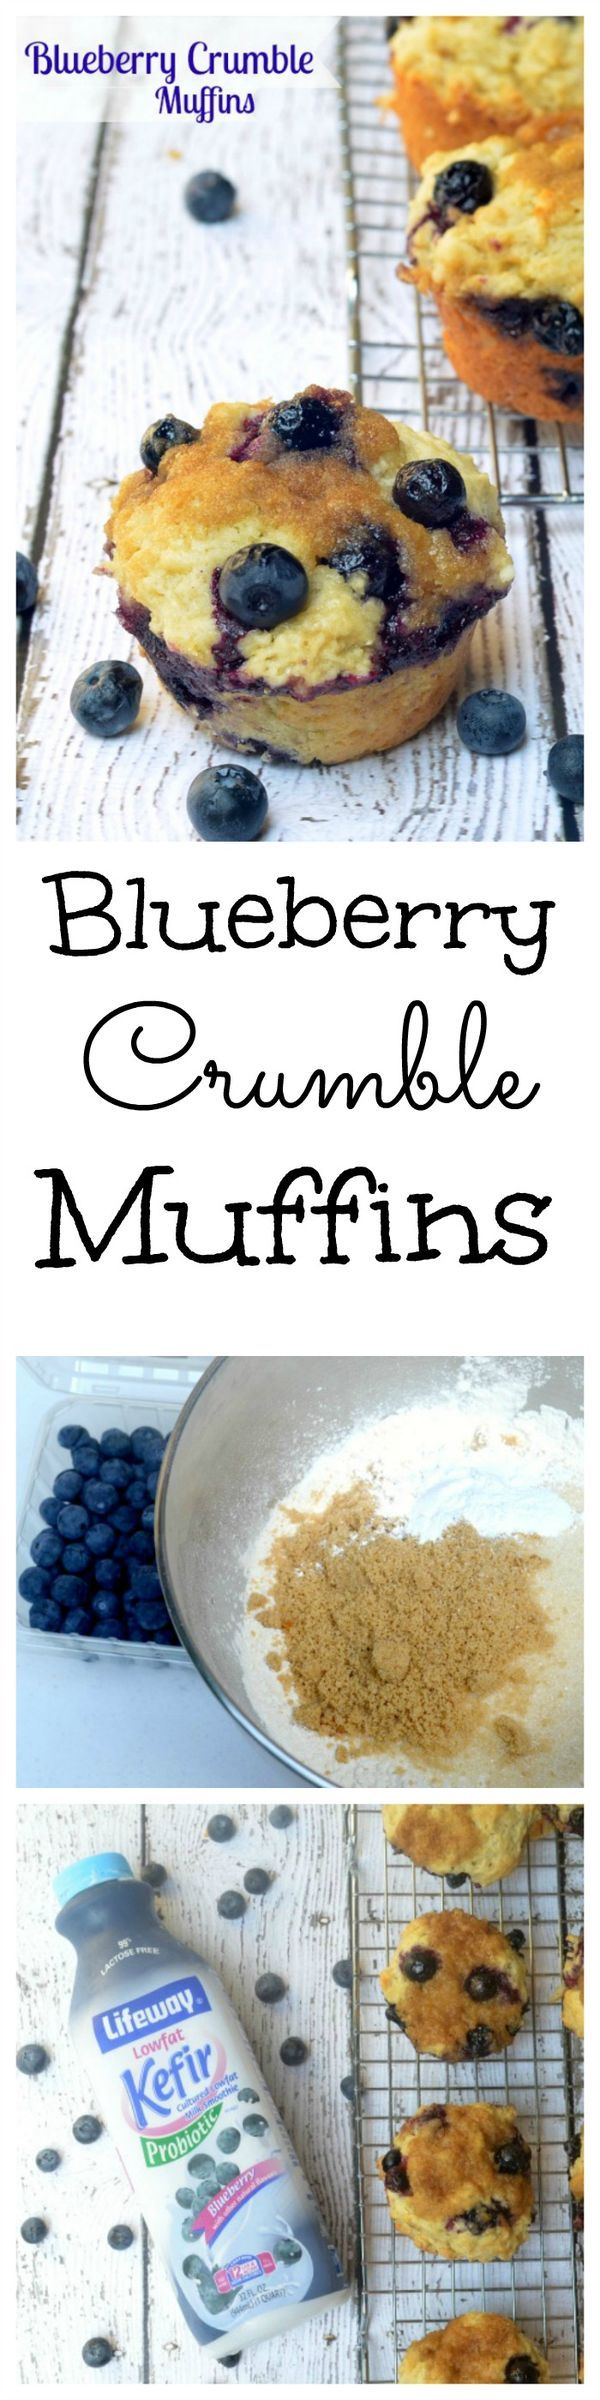 Ready for some mouth watering awesomeness? These blueberry crumble muffins are to die for!